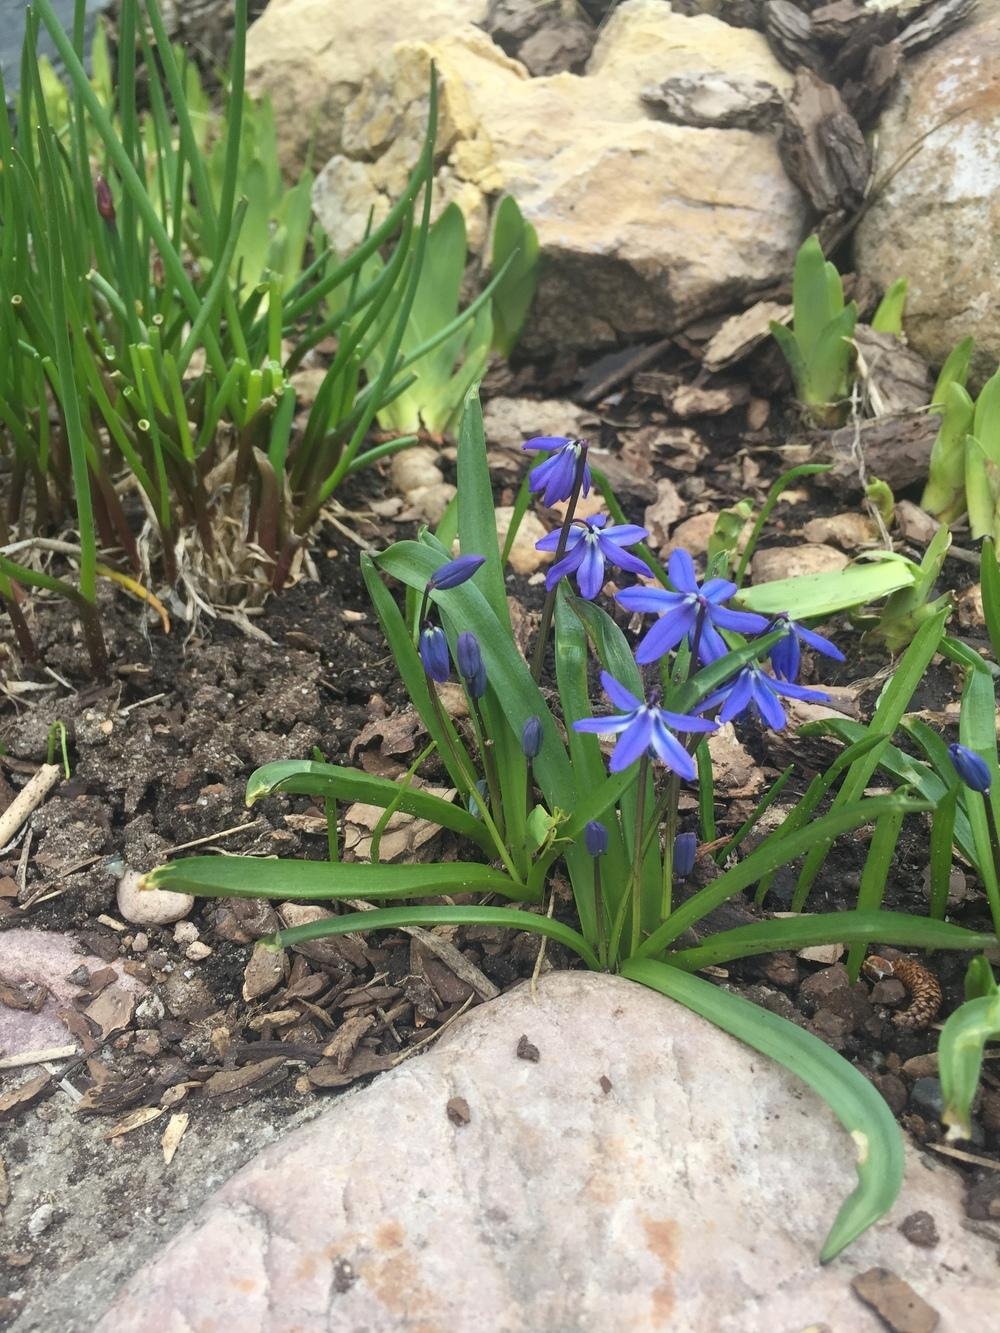 Plant id forum early spring bulb flowers face downward garden thumb of 2018 04 11springgreenthumbdfff3c mightylinksfo